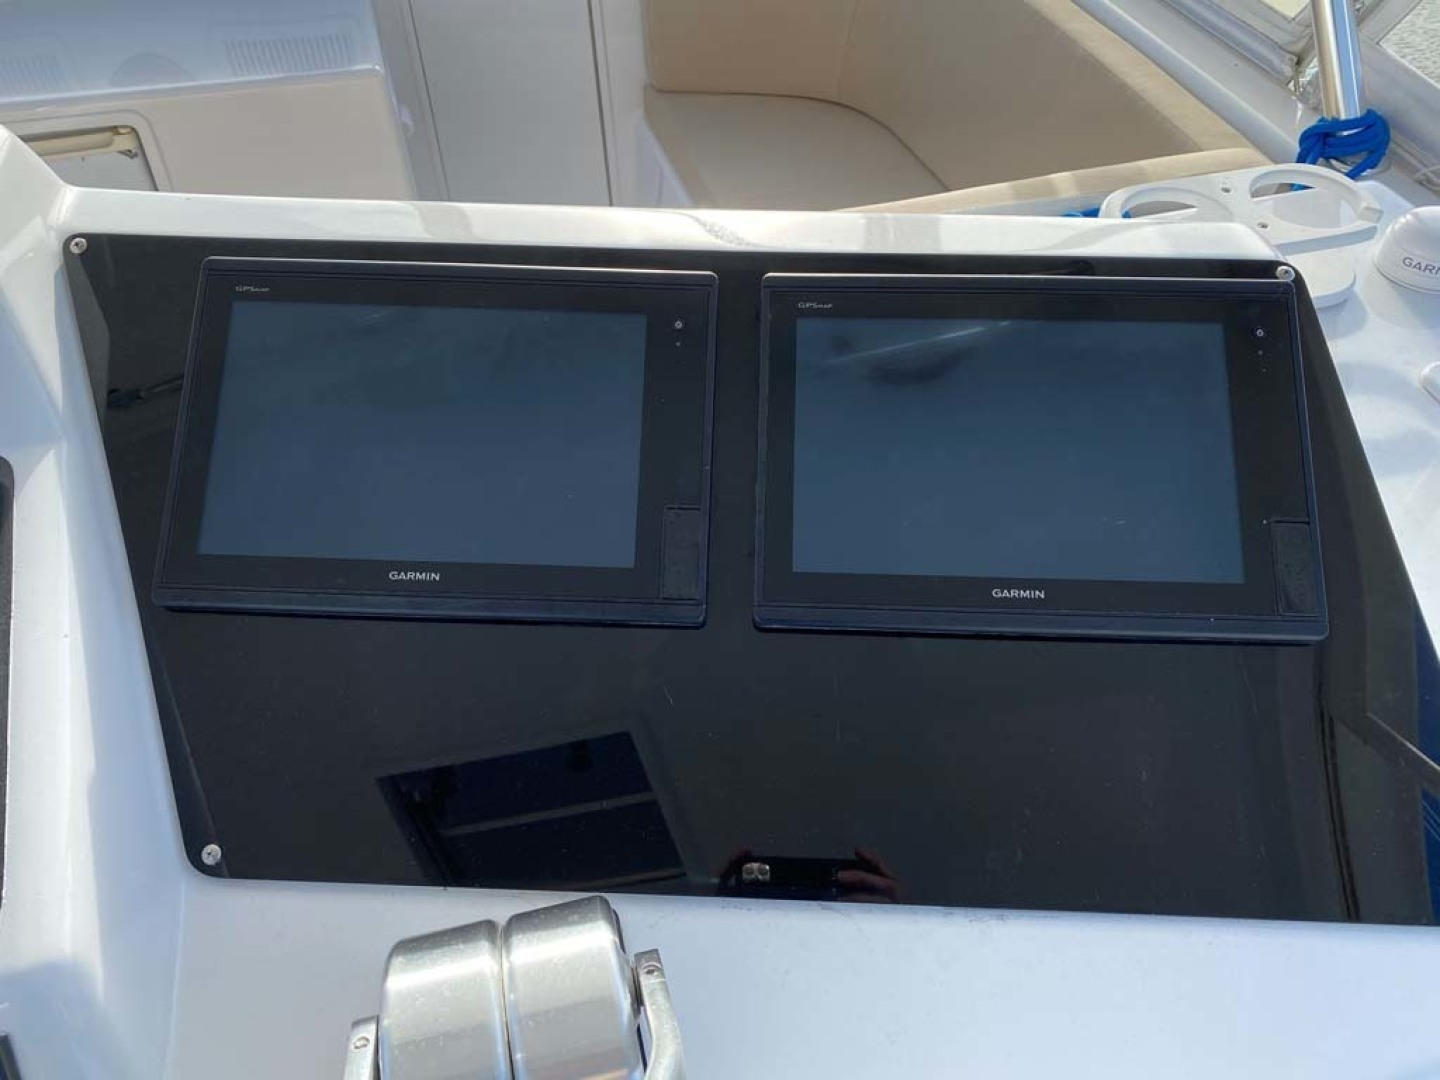 Ocean Yachts-Super Sport 1998-MJs Cape May-New Jersey-United States-Garmin 7212 Multi-Function Display (Chartplotter and Sounder) and Garmin 4208 Multi-Function Display-1586515 | Thumbnail